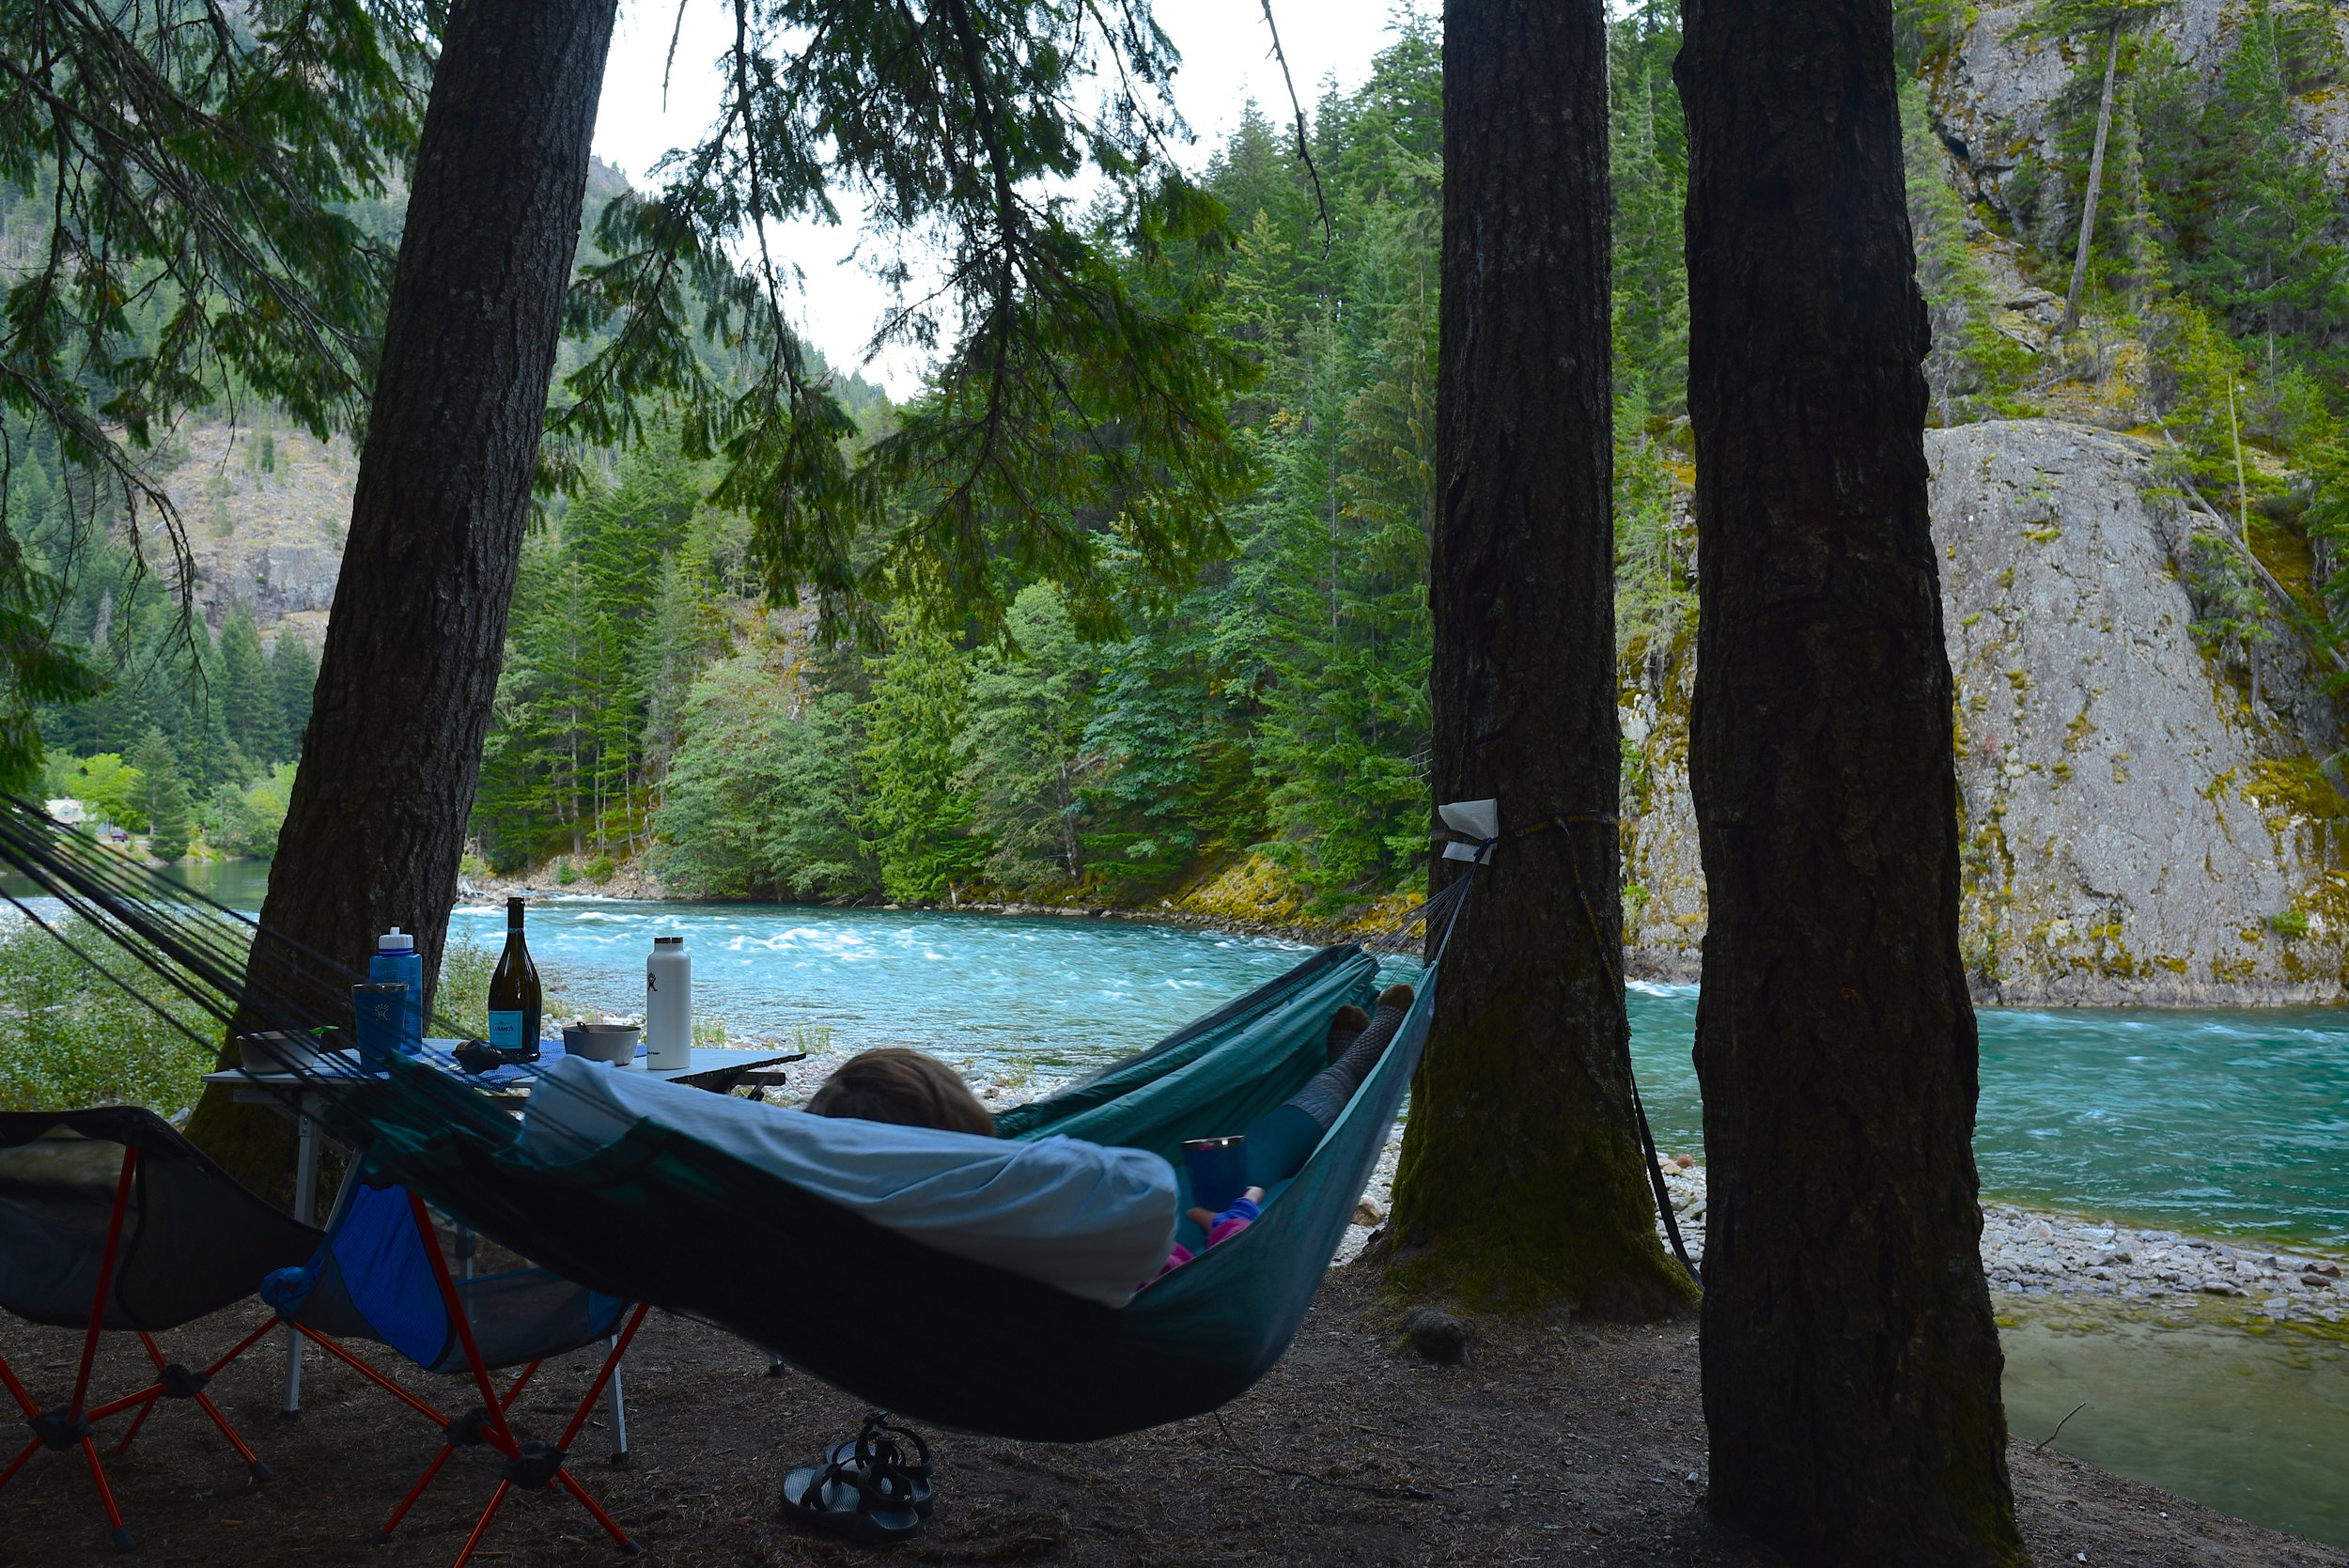 Hammock relaxation time at our campground in the North Cascades